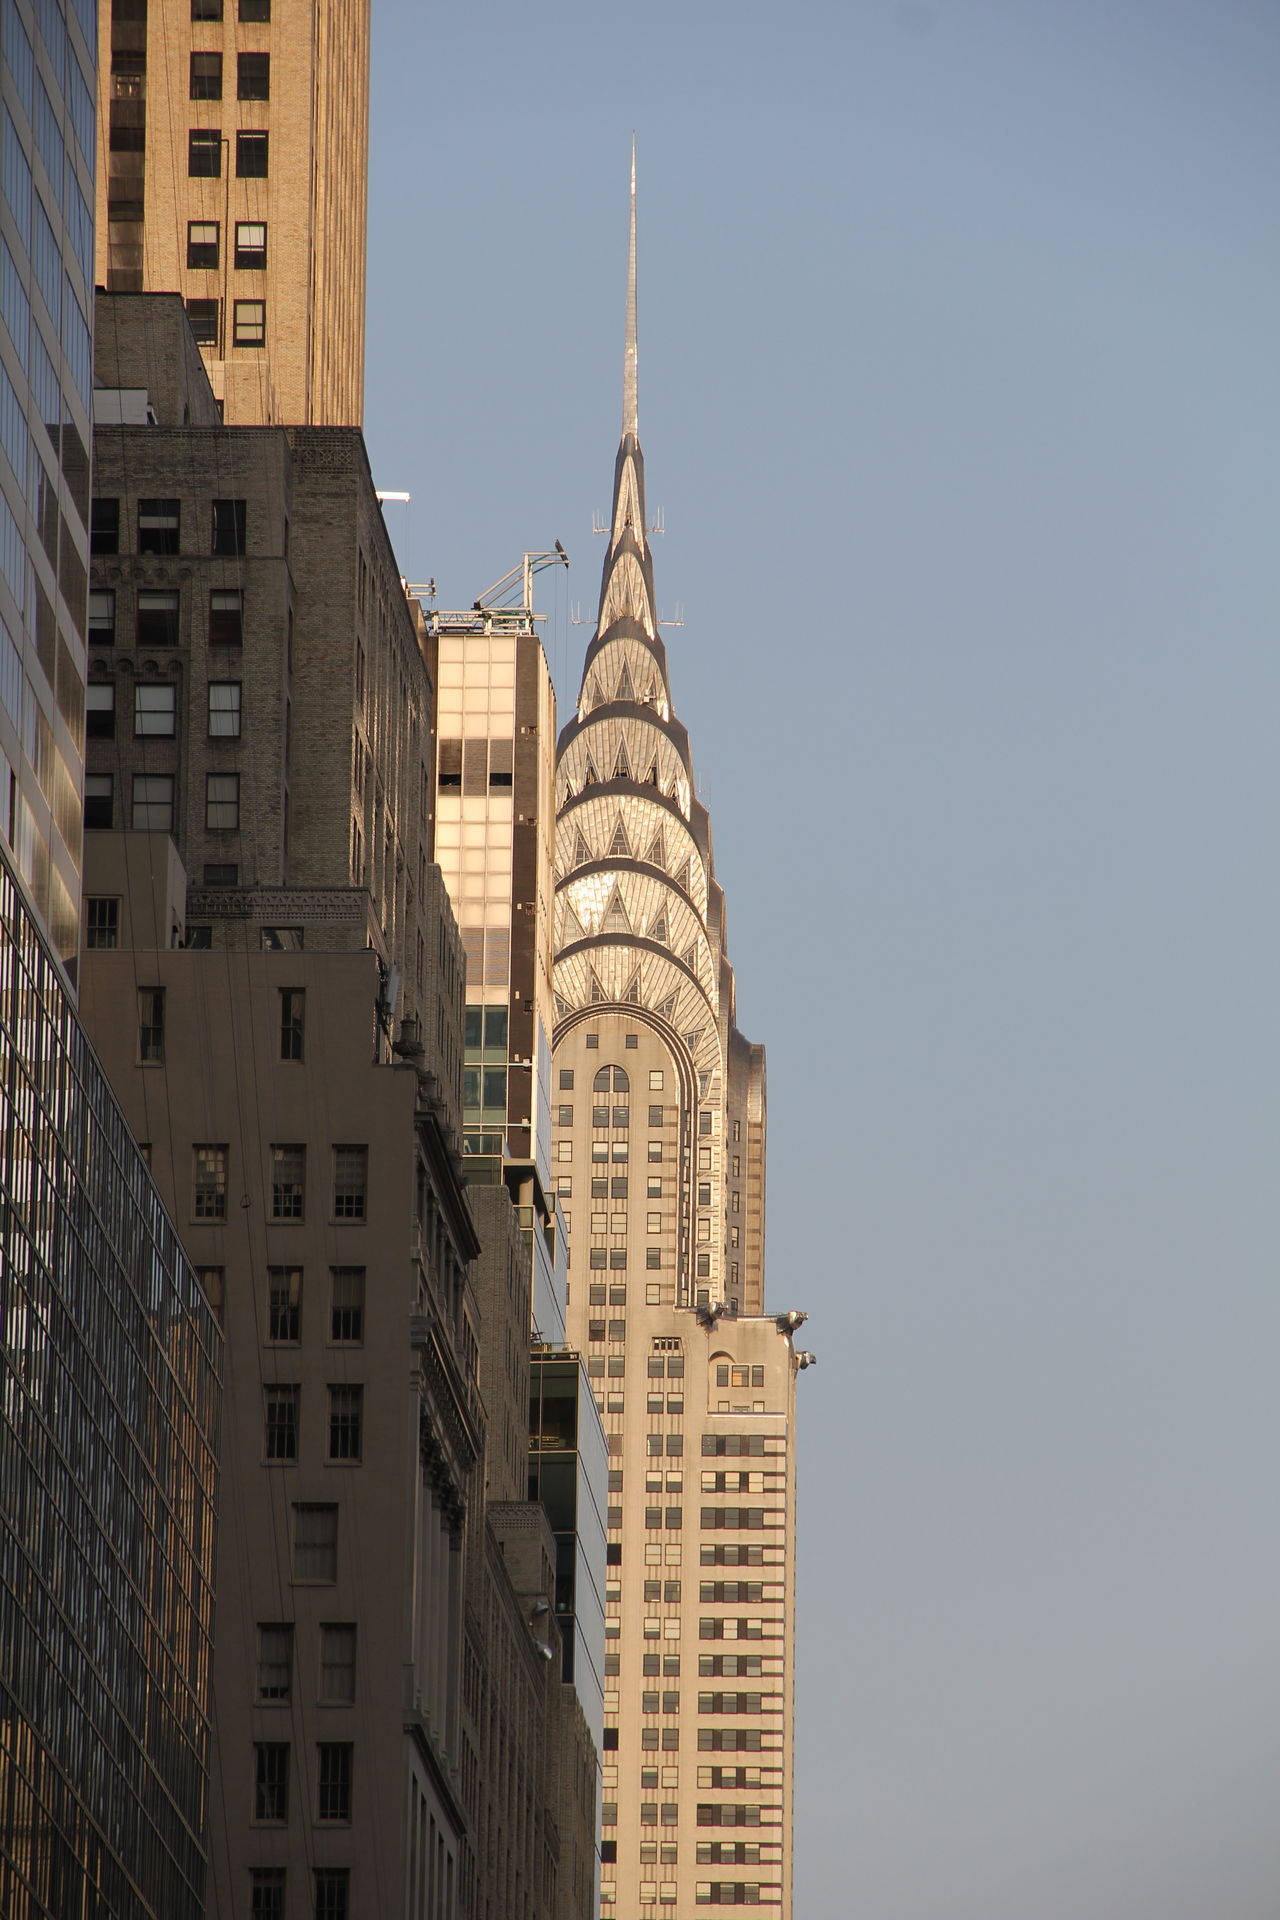 The iconic Chrysler building in New York City Architecture Big Apple Building Exterior Built Structure Chrysler Building City Cityscape Clear Sky Icon Iconic Buildings Landmark Landmarkbuildings New York New York City No People NYC NYC Photography Outdoors Sky Skyscraper Travel Destinations Travel Photography Urban Urban Skyline USA